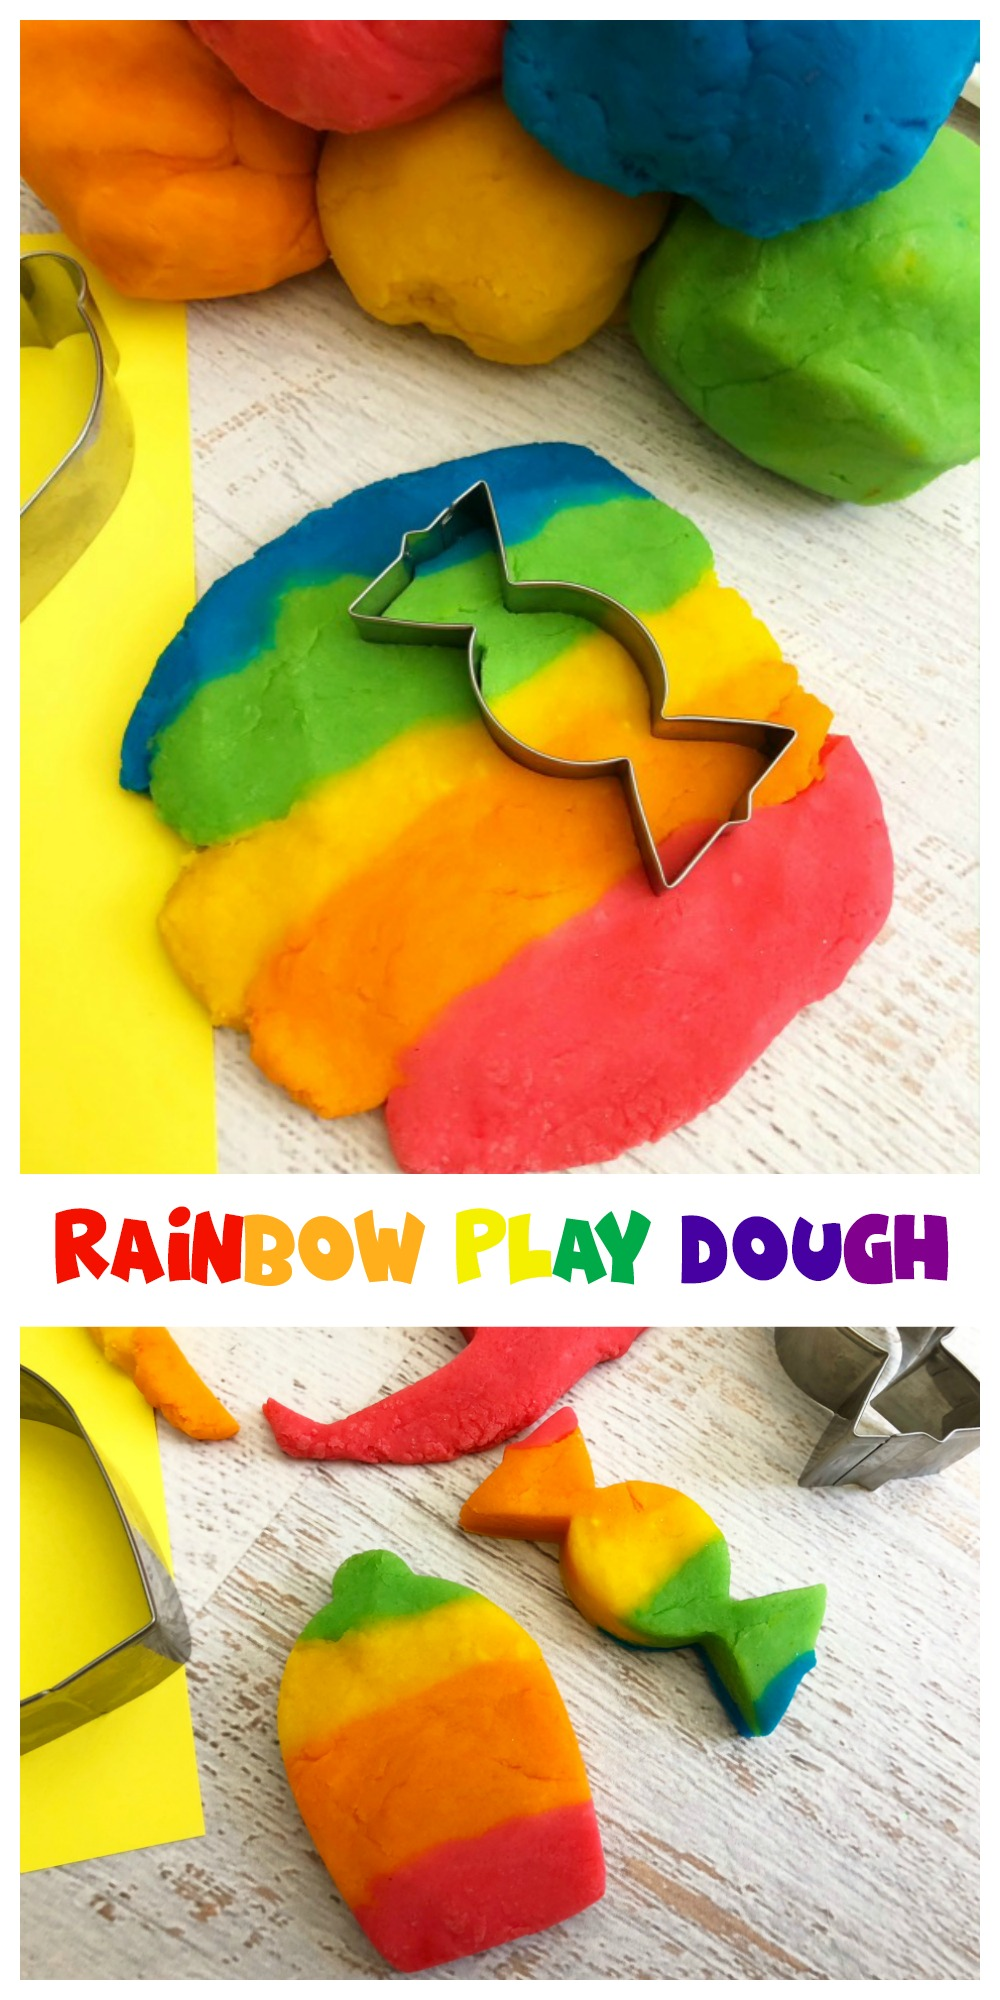 If your child enjoys play dough, try making this homemade Rainbow Play Dough next time. It's easy to make and sure to be a big hit!